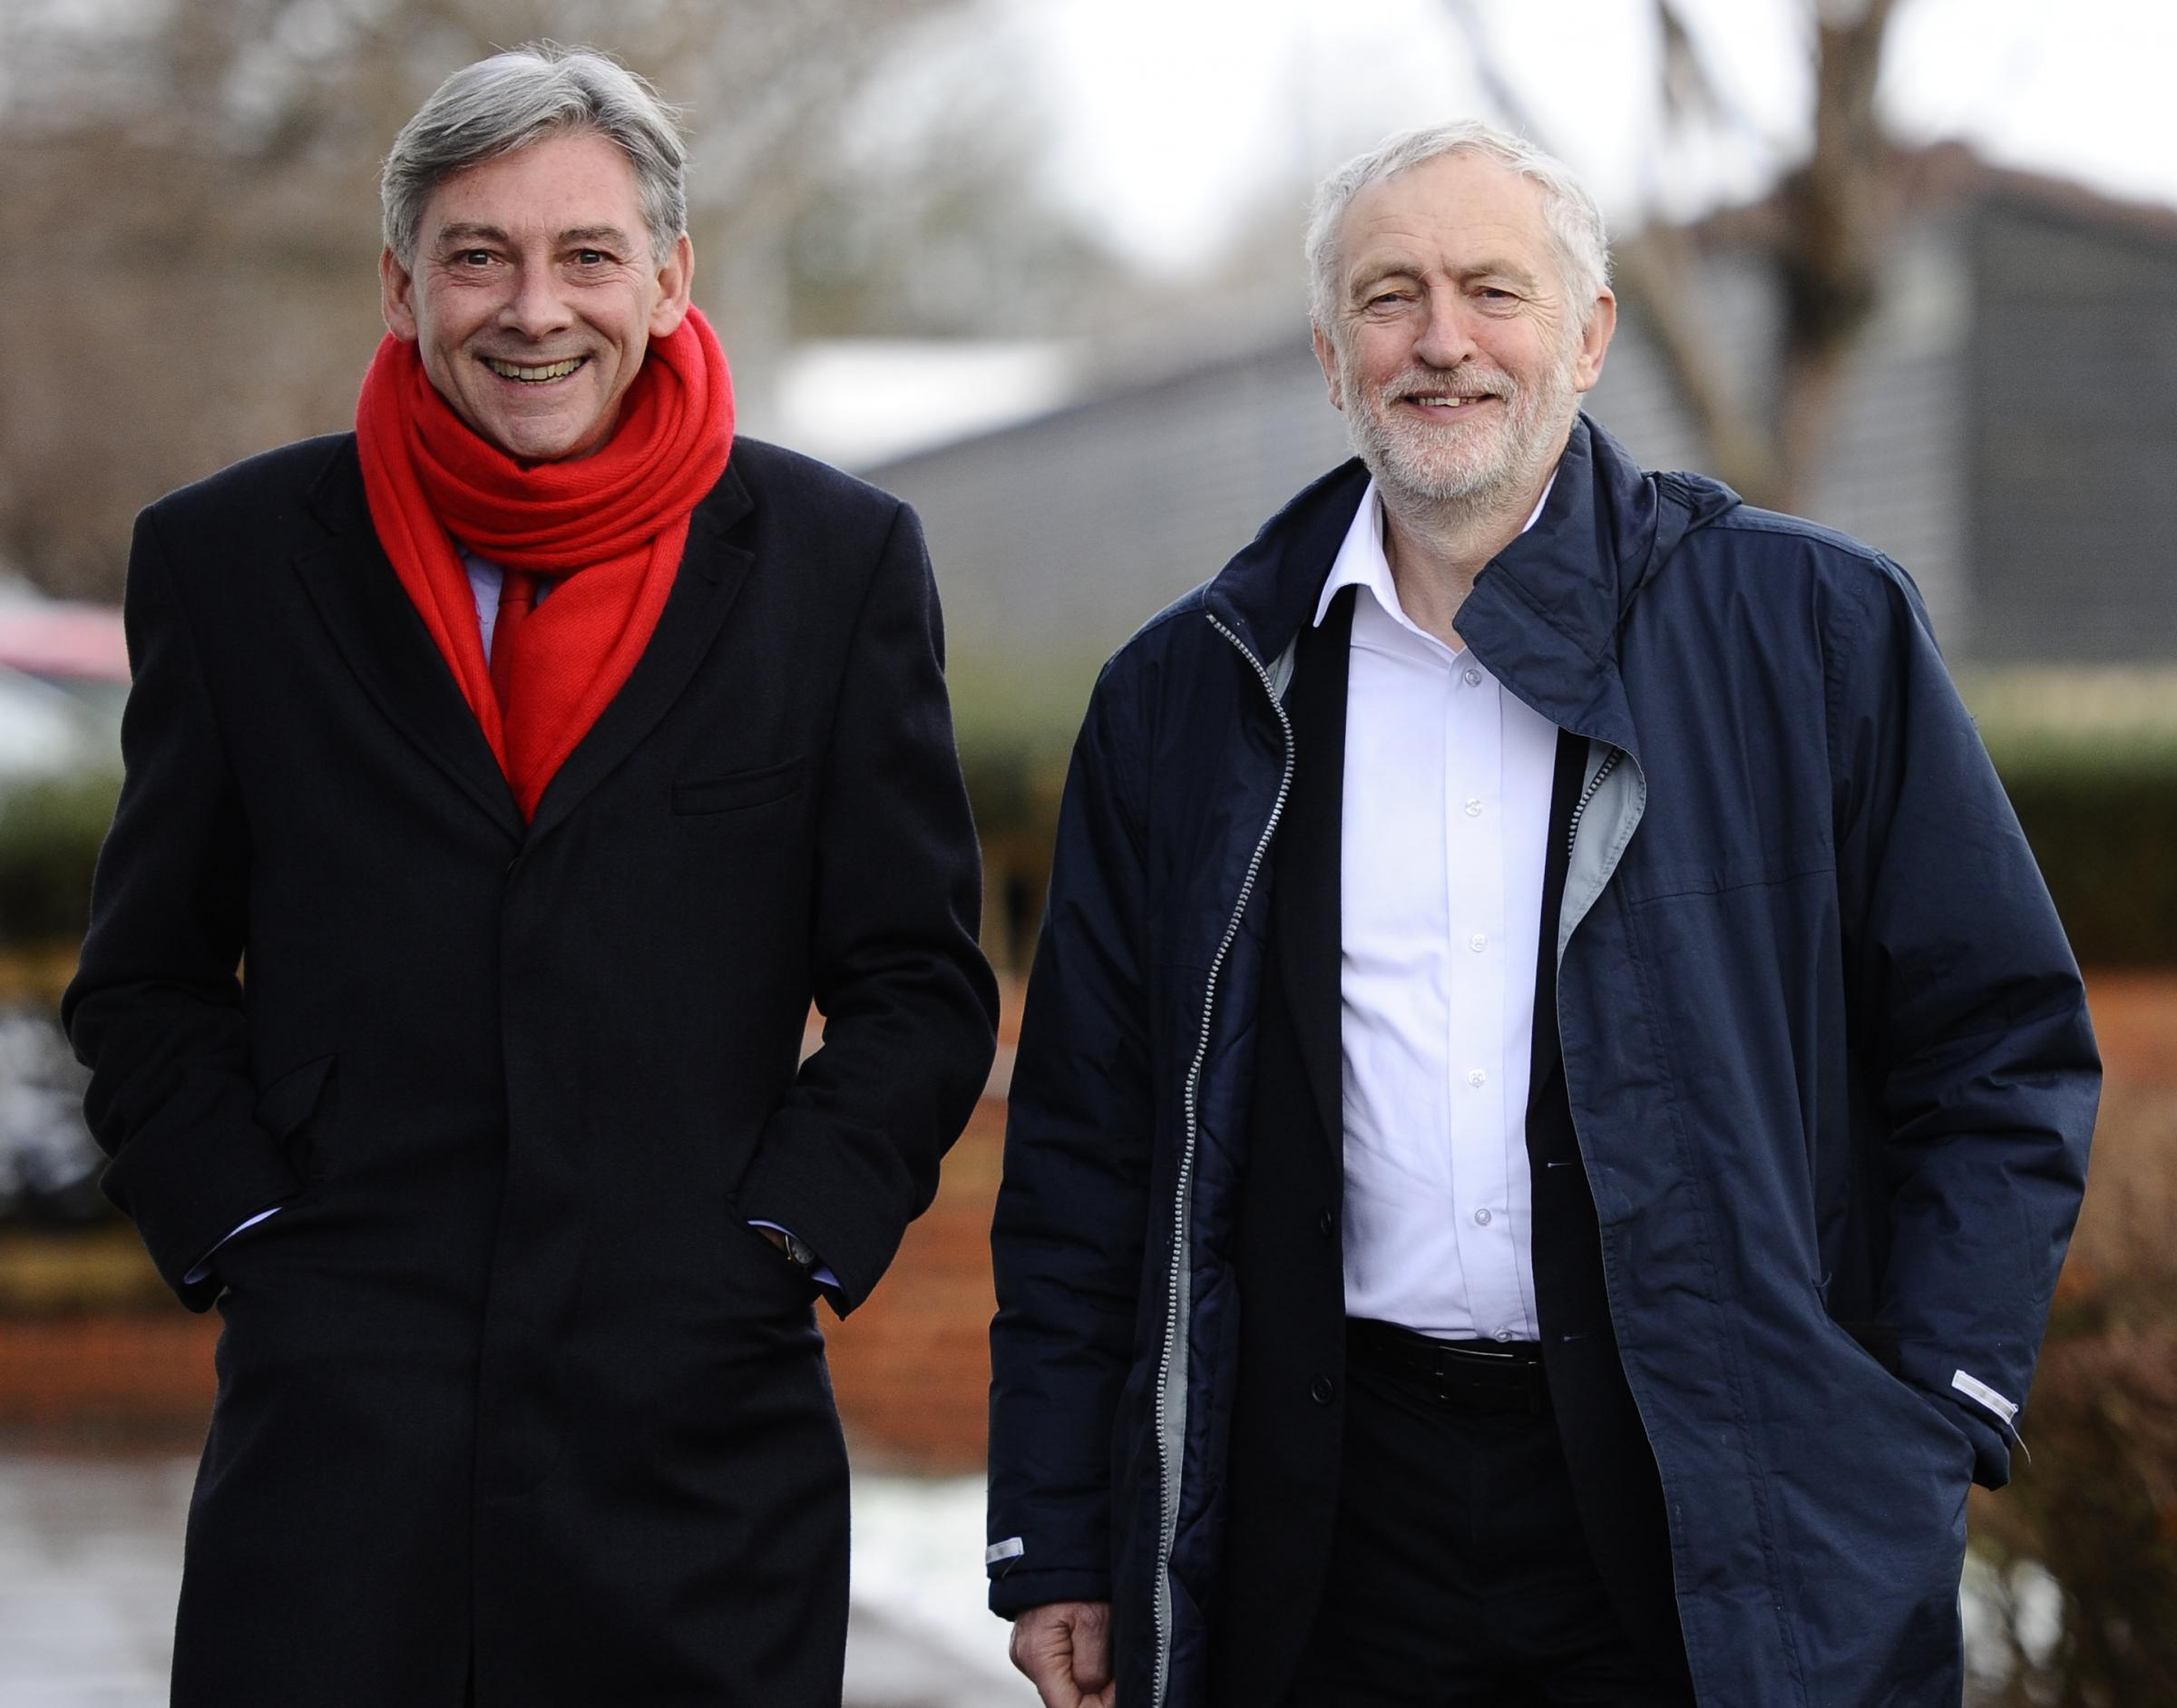 Jeremy Corbyn and Richard Leonard would rather throw in their lot with the Tories than countenance anything other than a hard Brexit